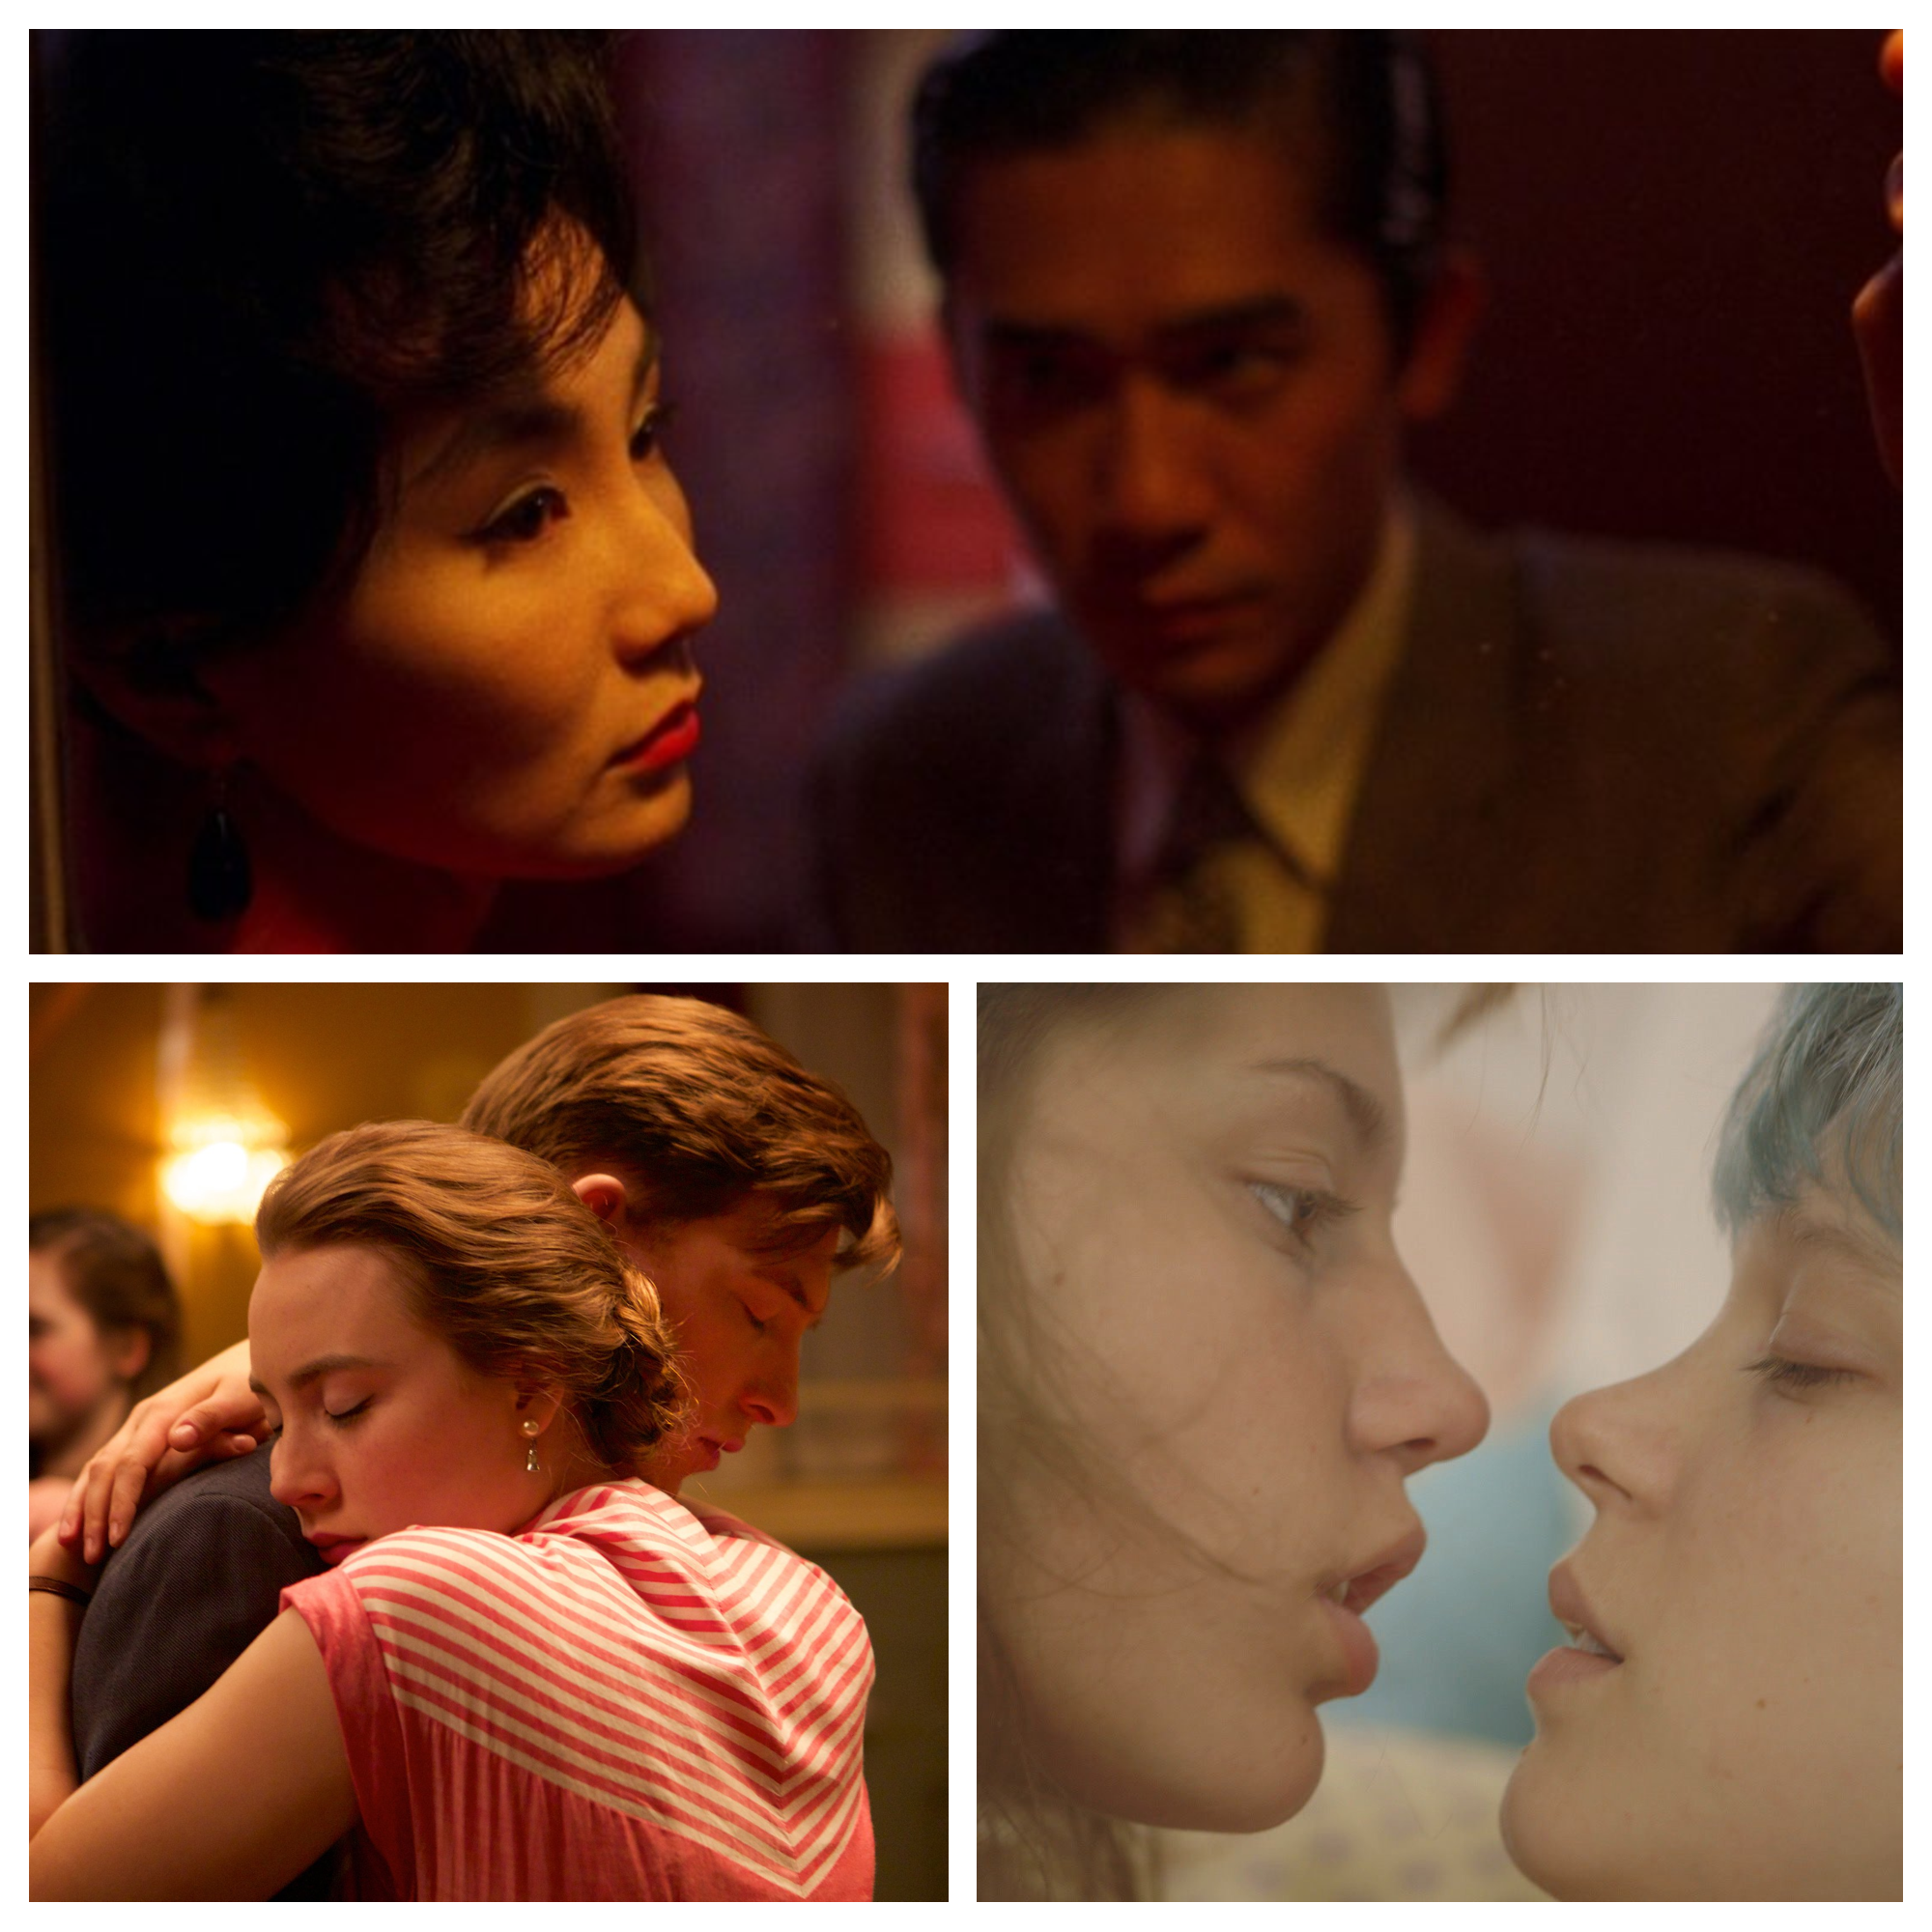 Best Romance Movies Of The 21st Century, Ranked